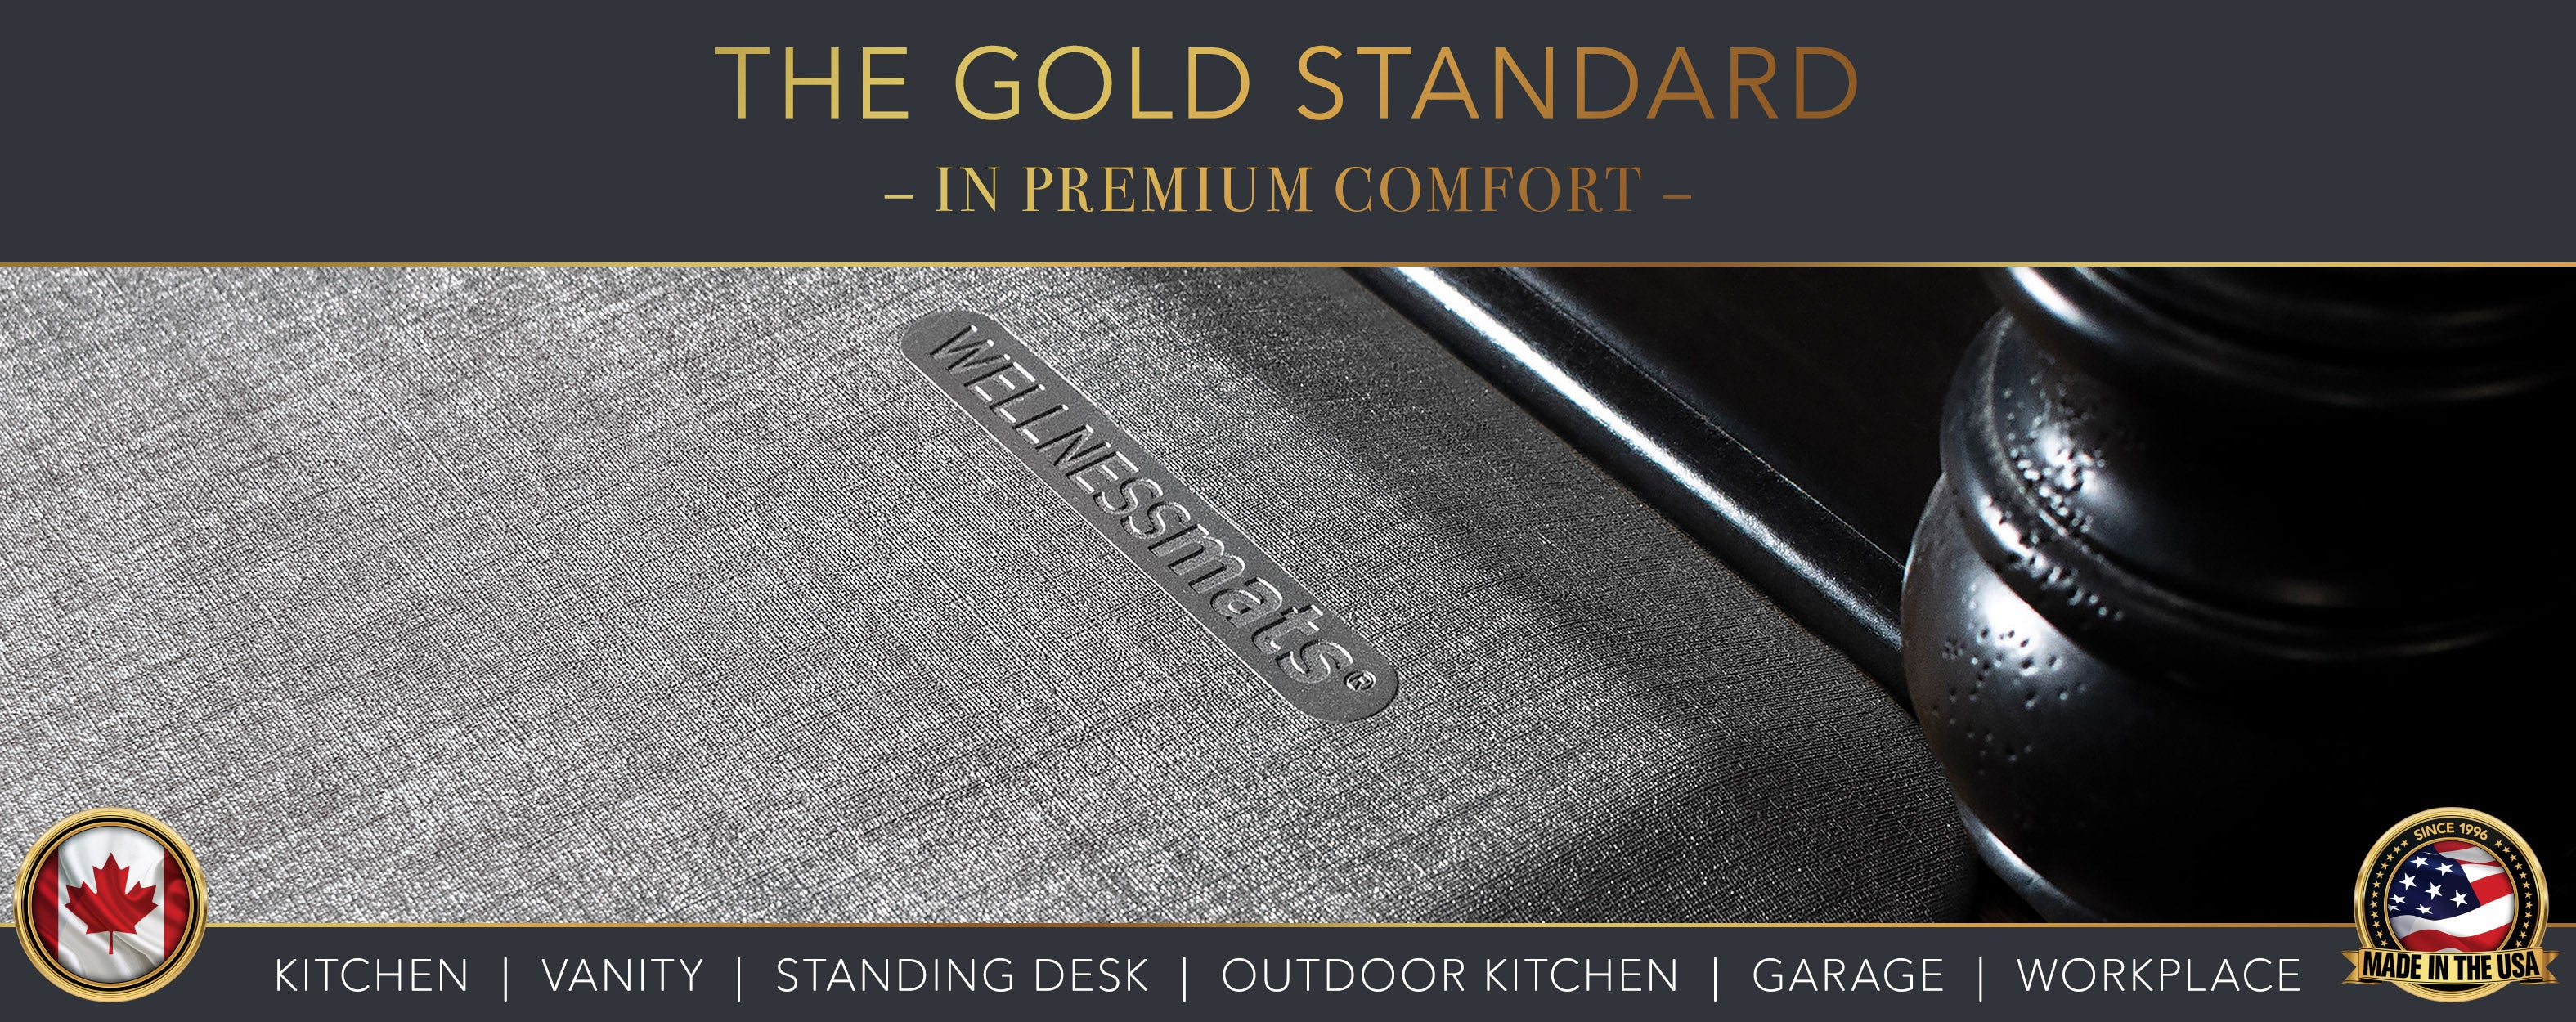 The Gold Standard in Premium Comfort